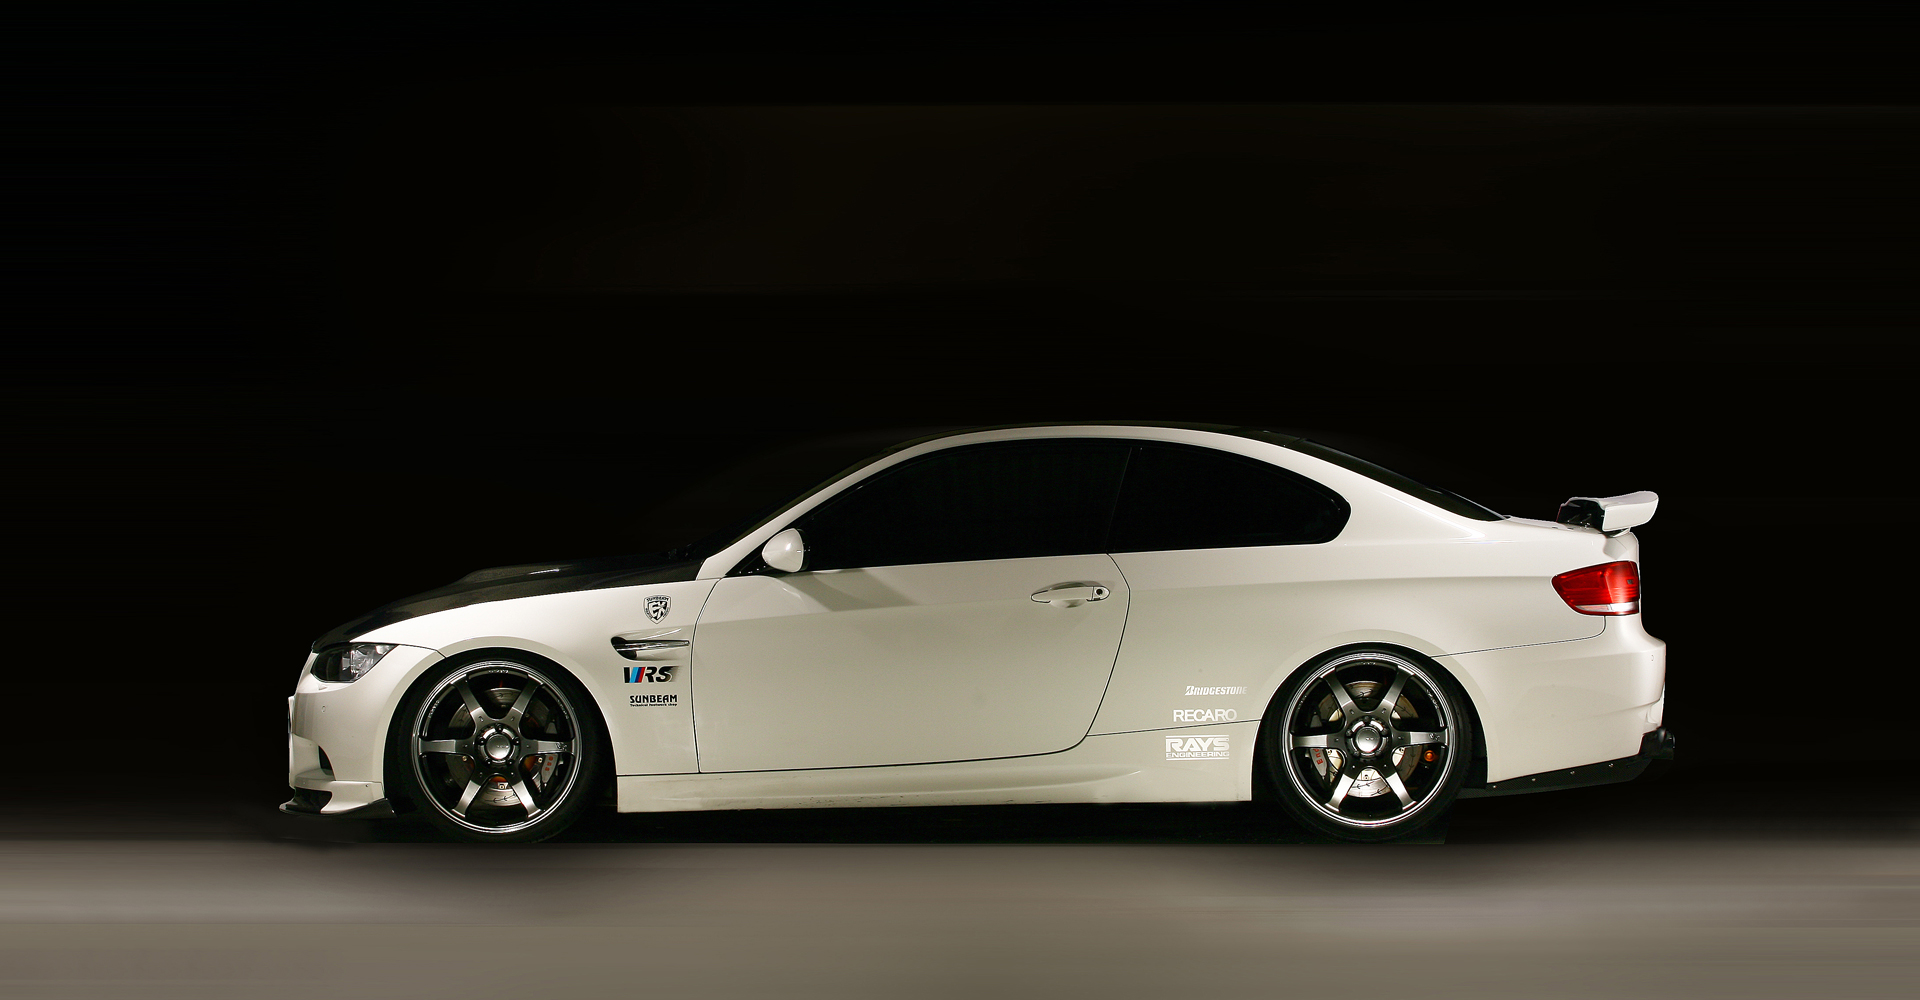 Vrs Bmw E92 M3 Coupe